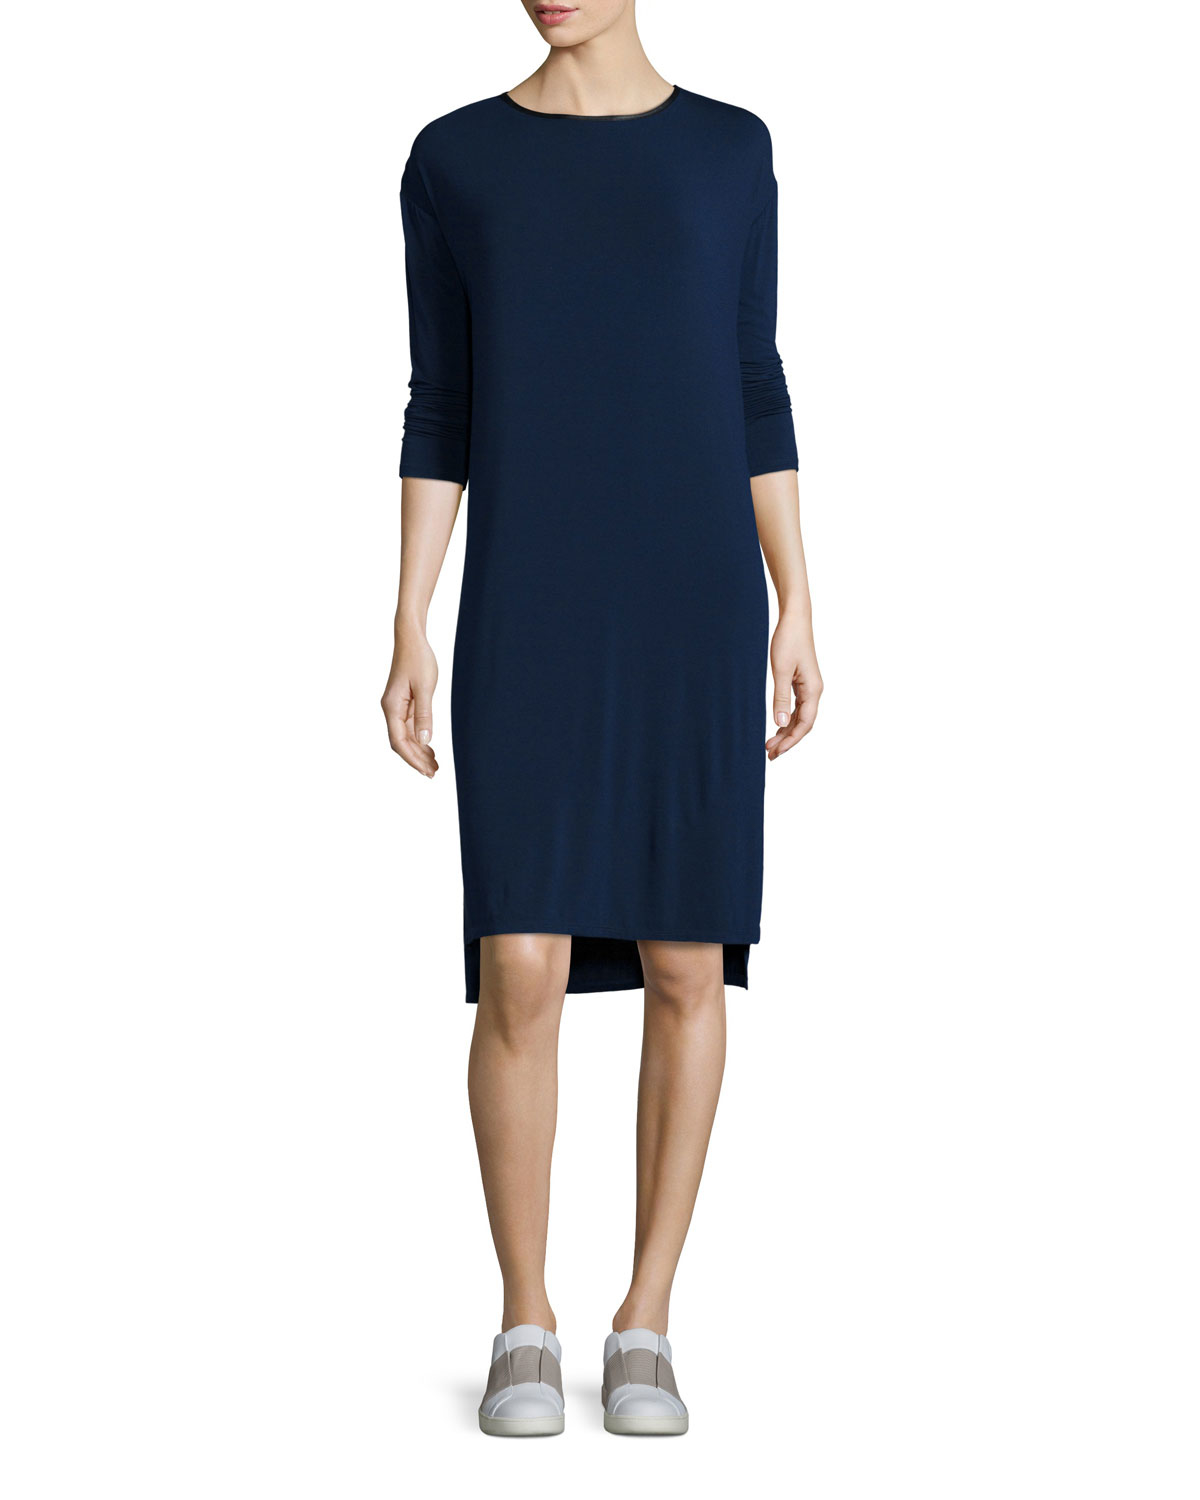 Vince leather trim t shirt dress in blue lyst for Vince tee shirts sale